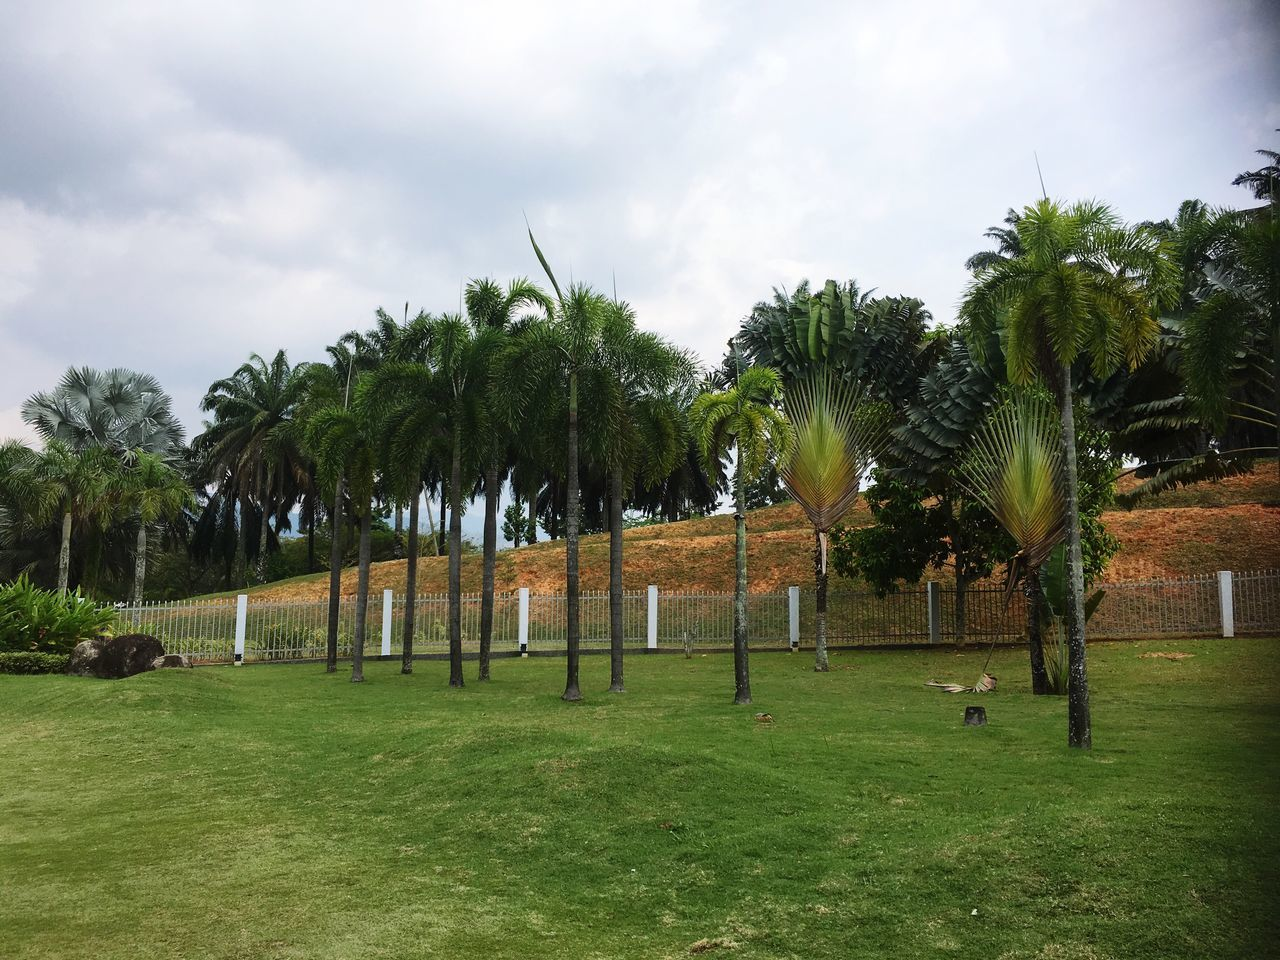 tree, grass, sky, green color, growth, palm tree, cloud - sky, field, nature, day, outdoors, landscape, no people, beauty in nature